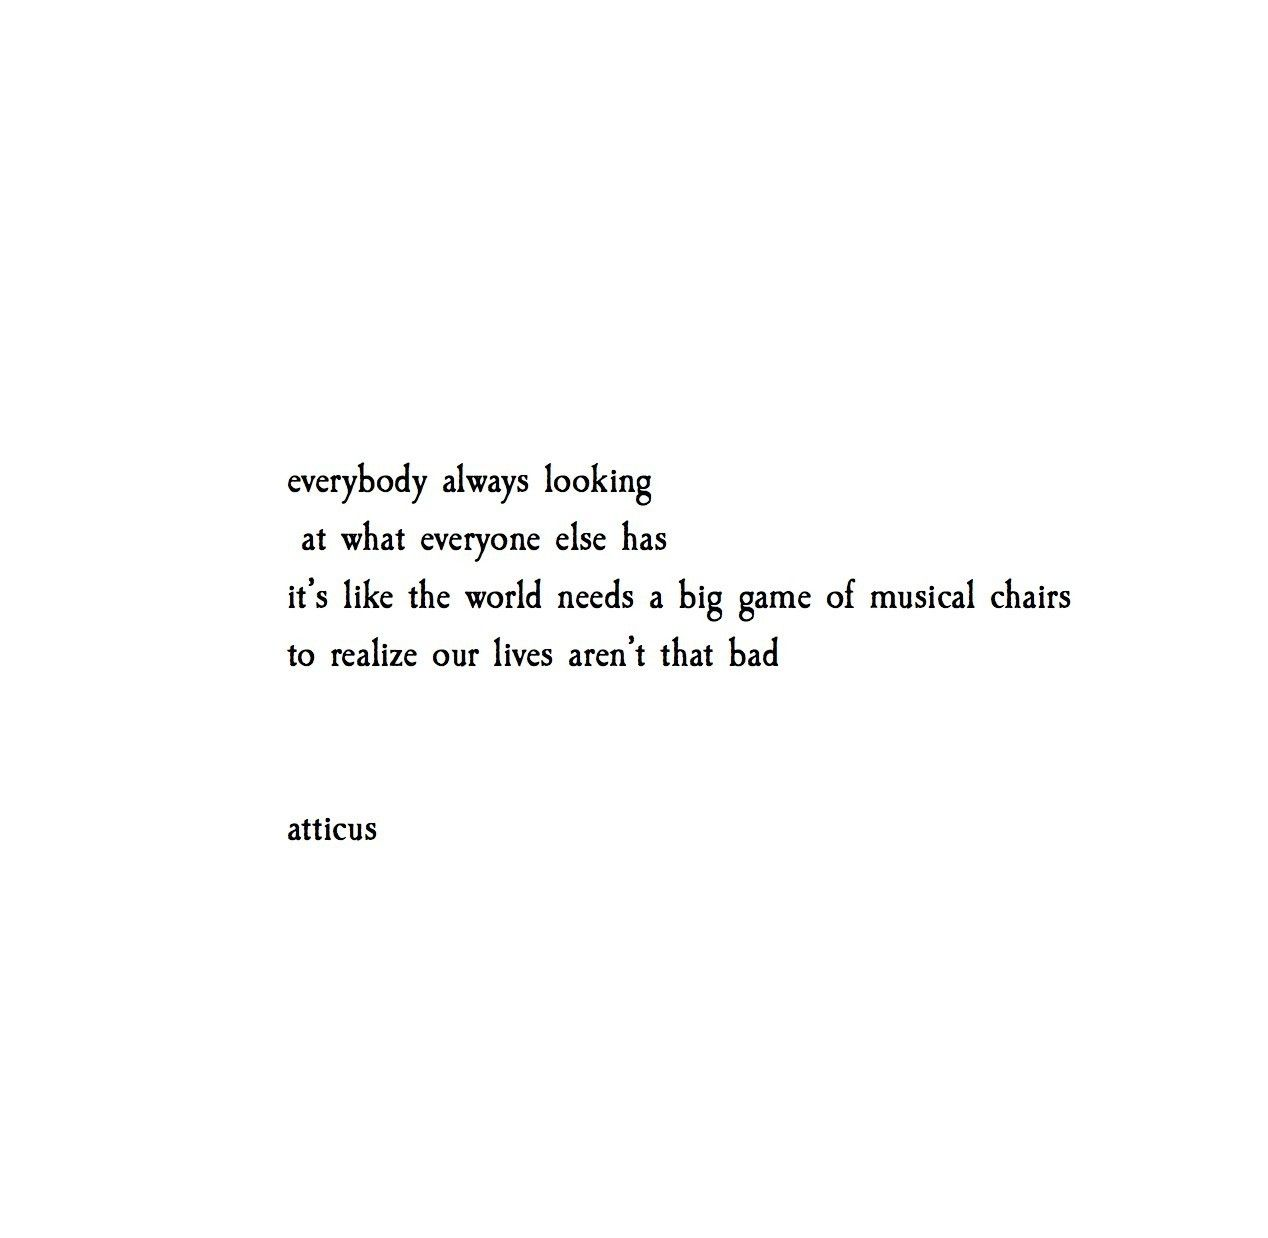 Musical Chairs Atticuspoetry Atticuspoetry Quotes Poetry Touching Quotes Pretty Words Words Of Wisdom